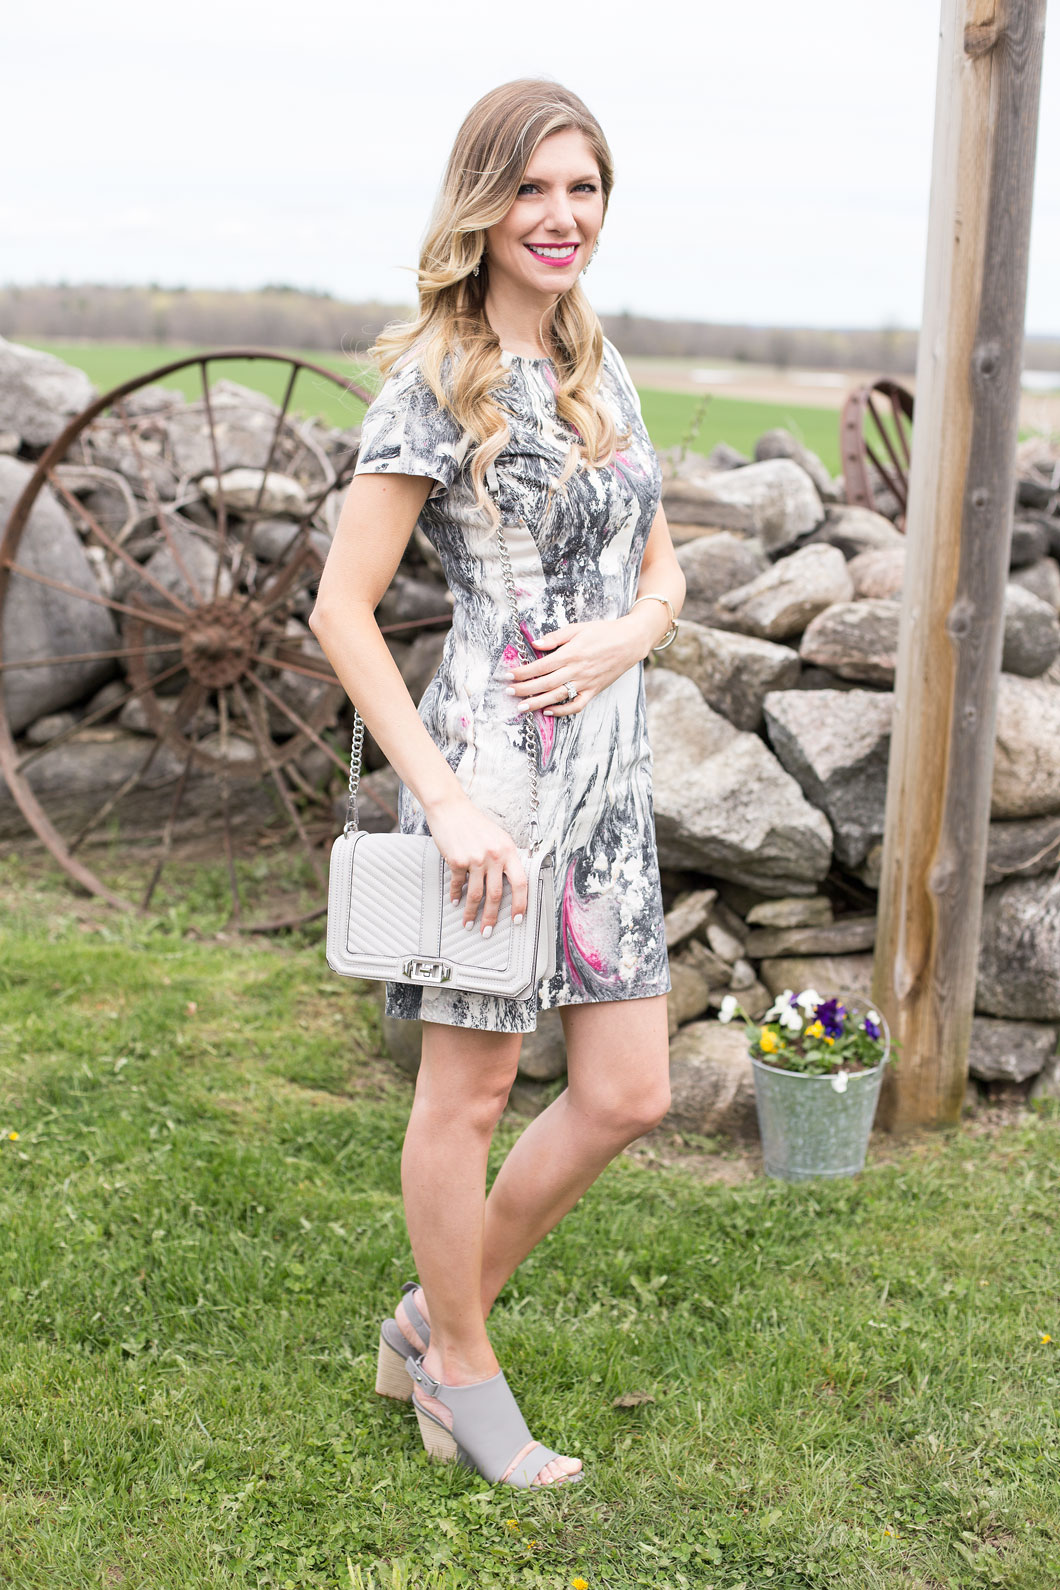 vince camuto sandals and gray dress